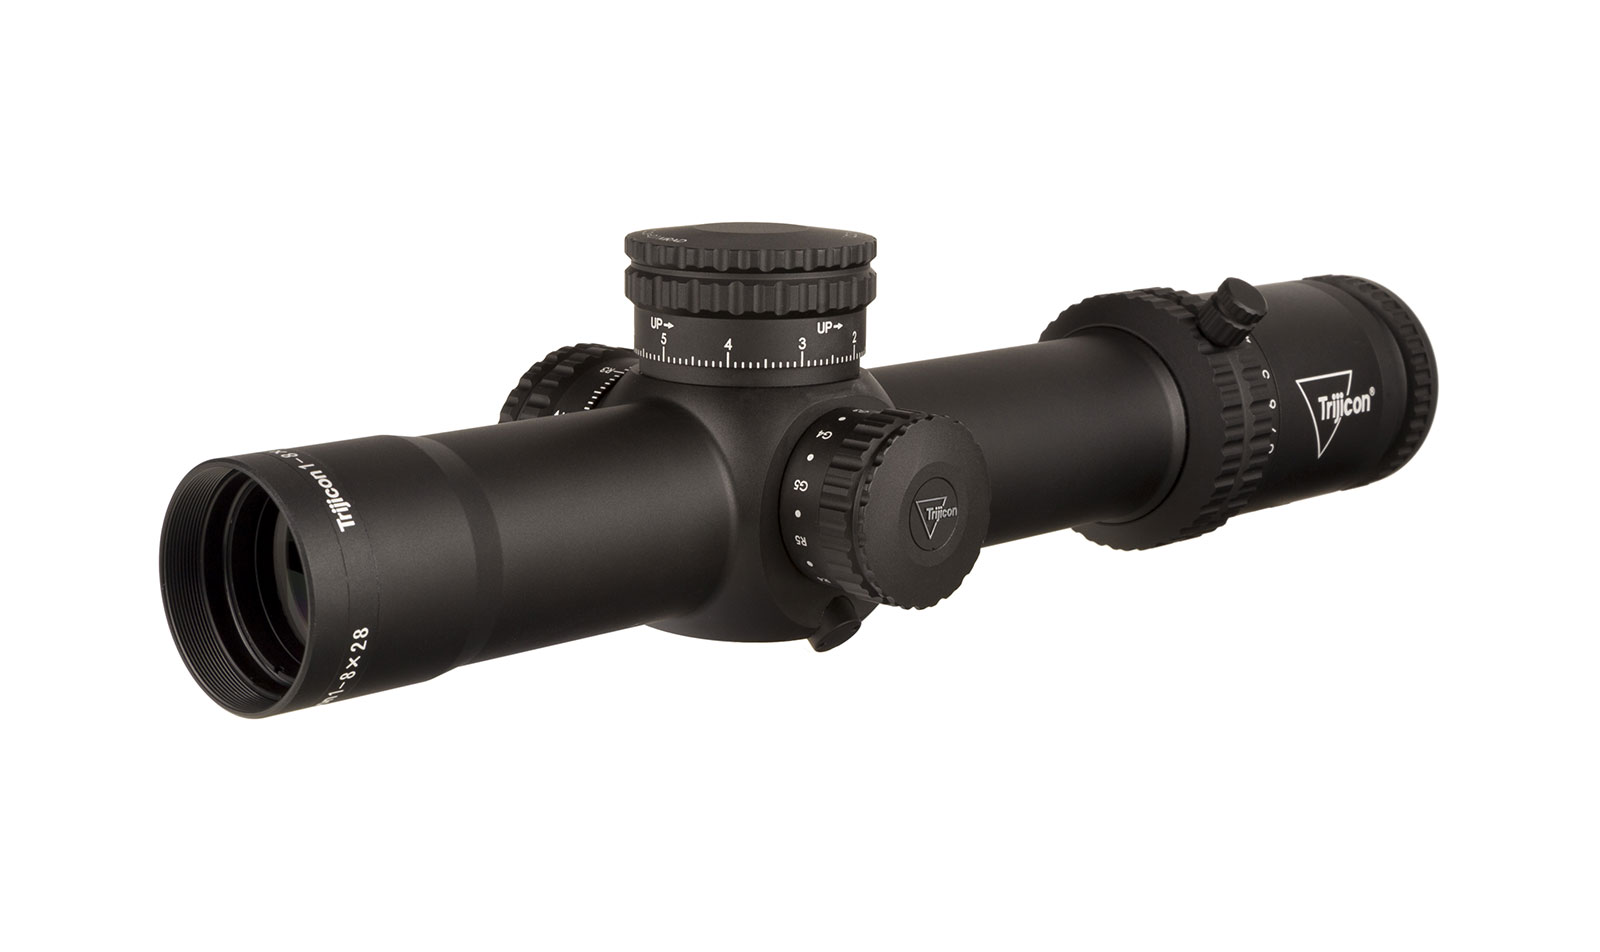 Trijicon Credo™ 1-8x28 Riflescope